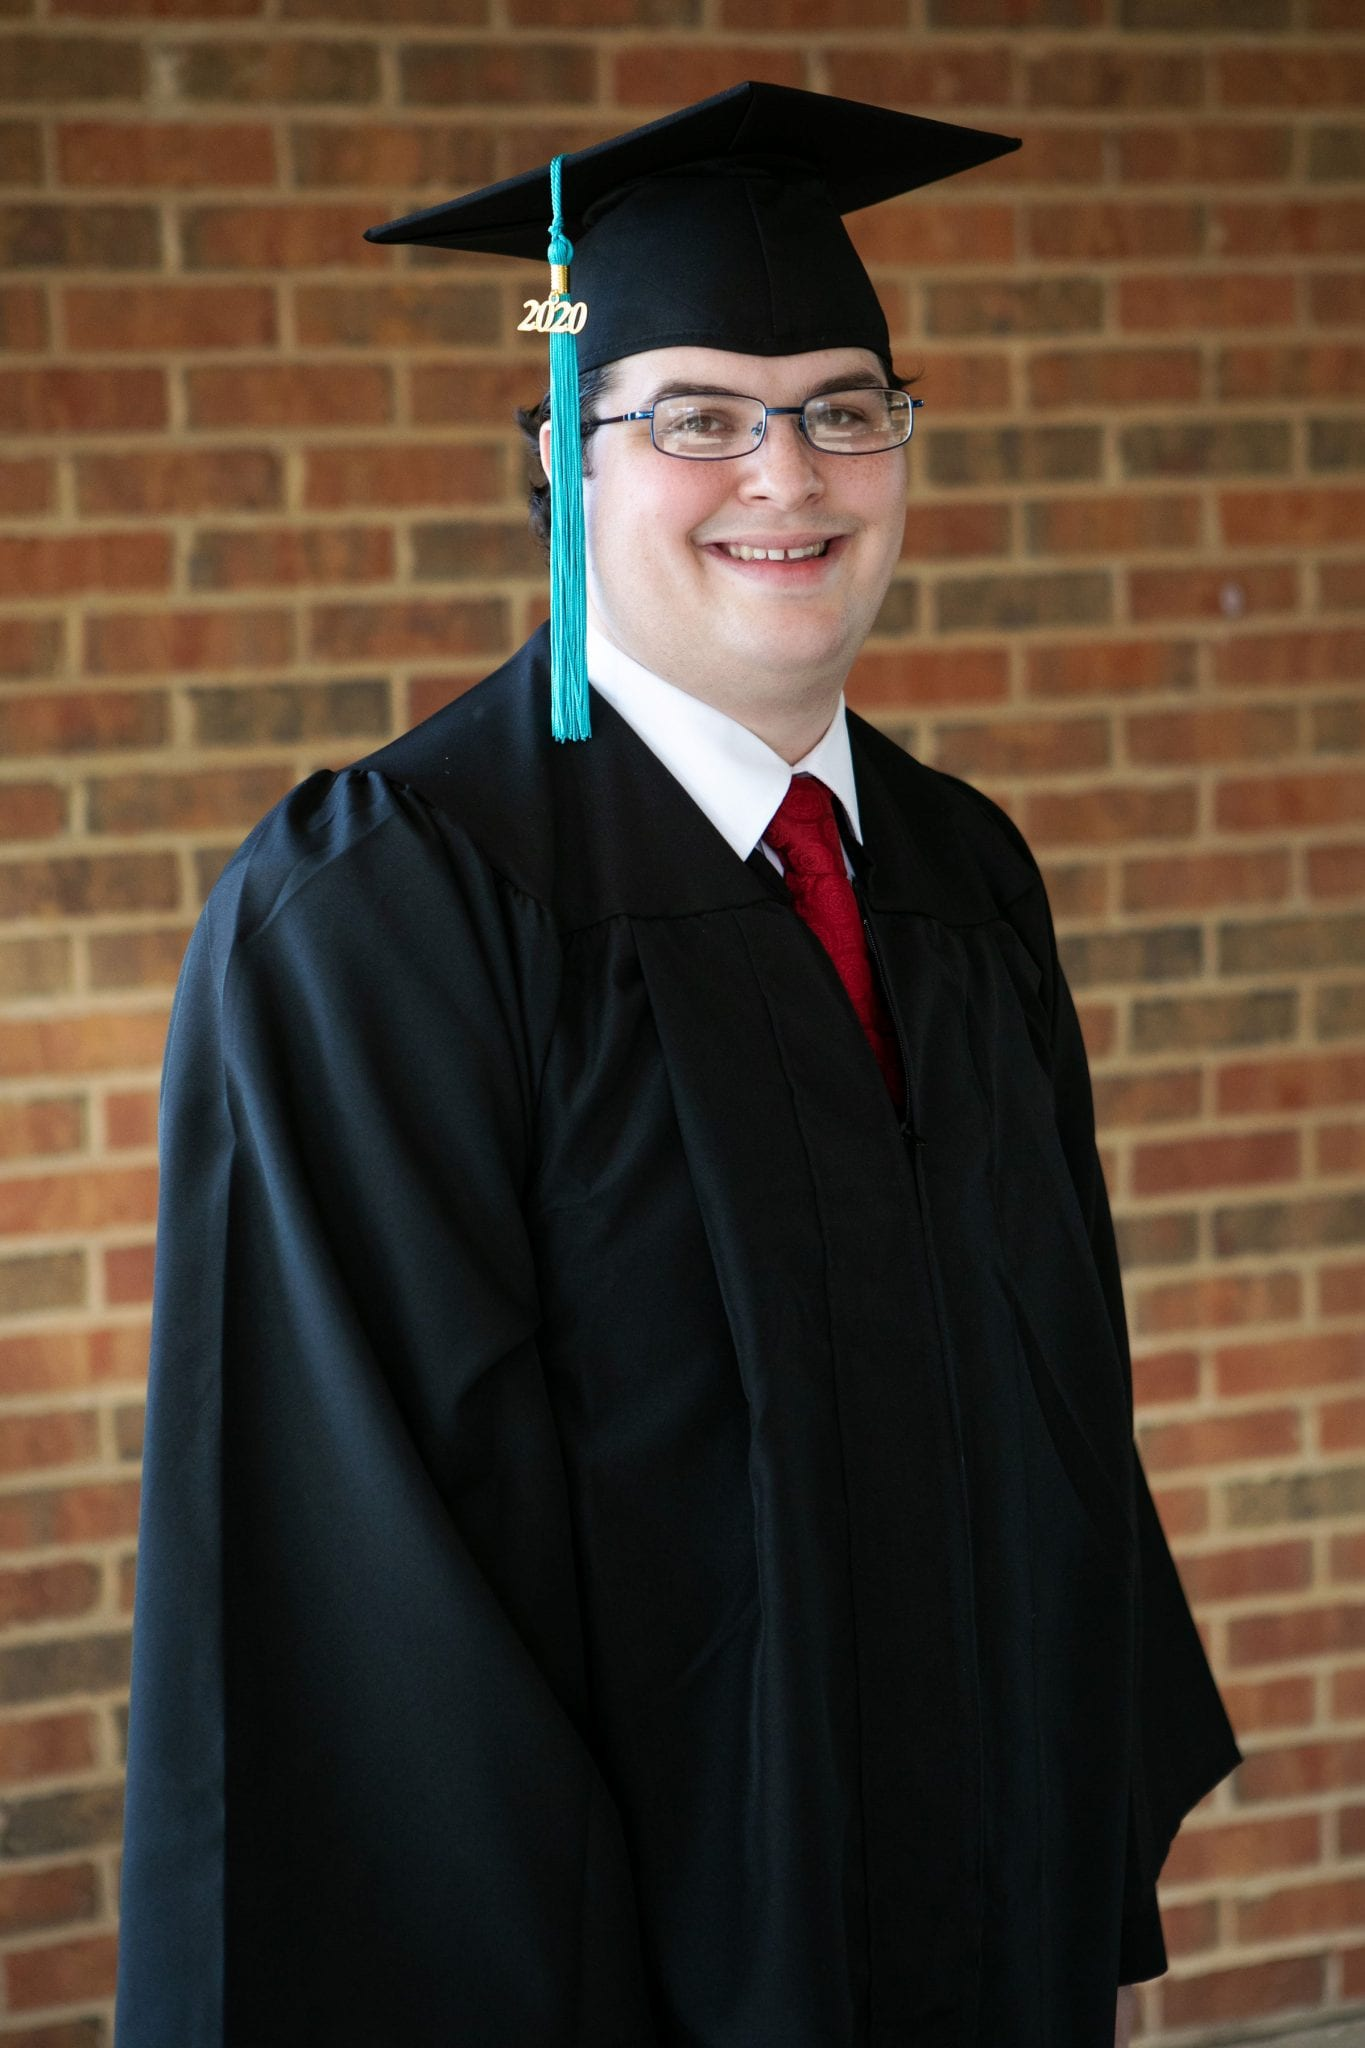 Daniel in his Cap and Gown